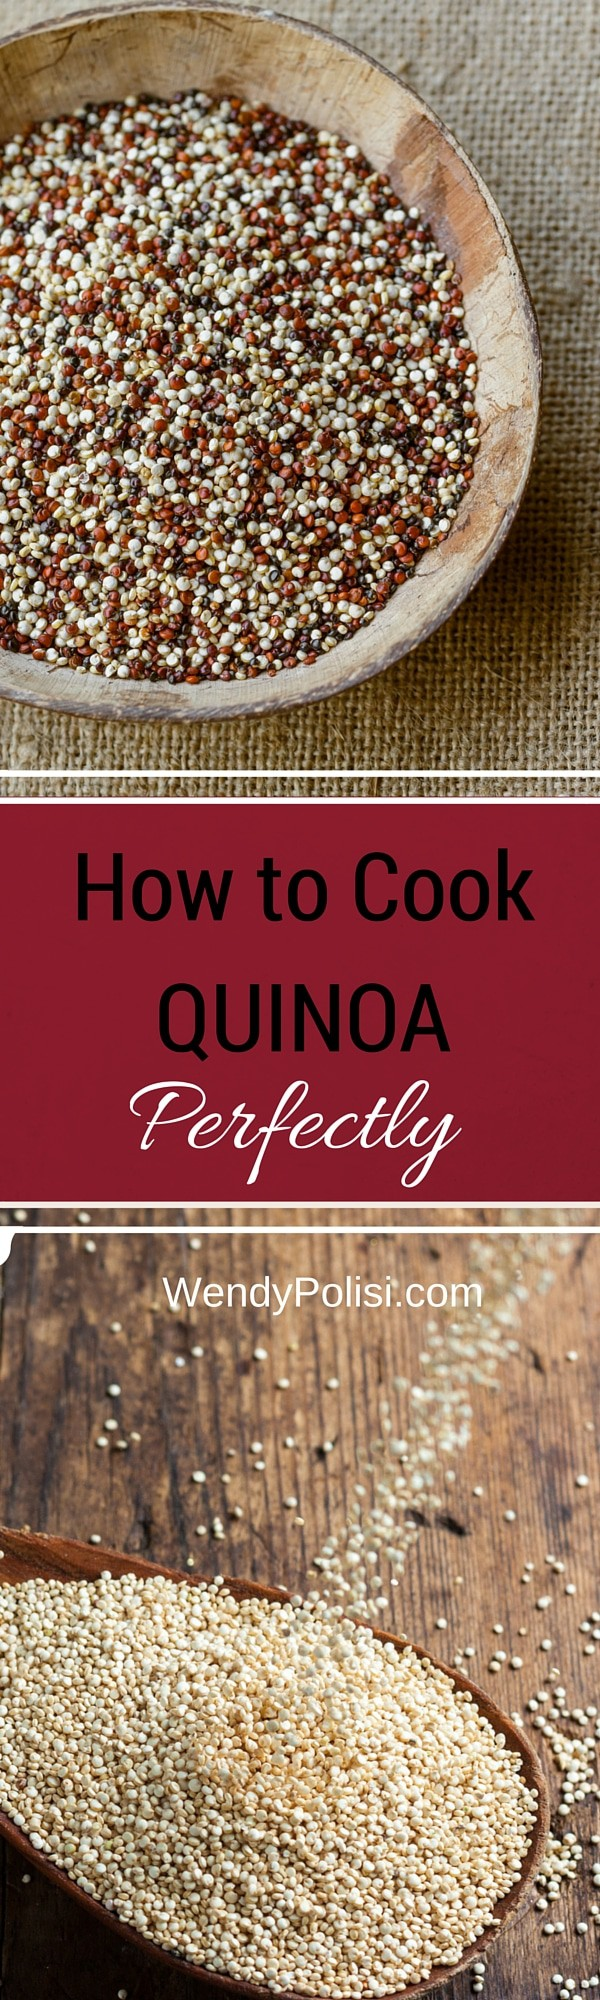 How To Cook Quinoa Perfectly  After More Than 600 Quinoa Recipes, I've